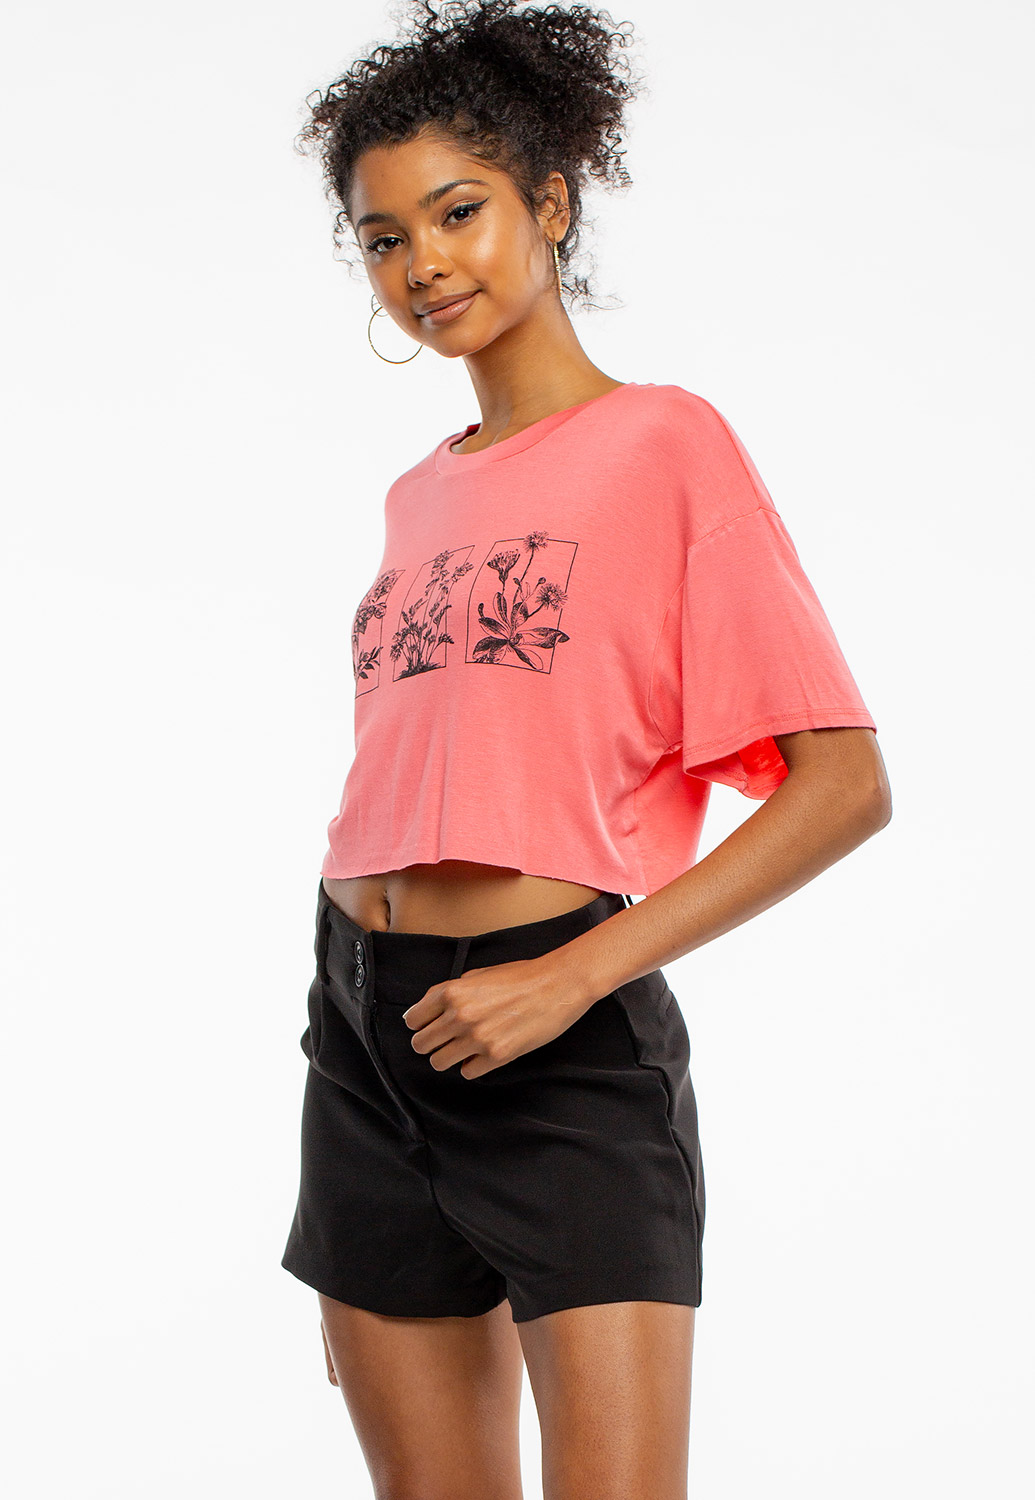 Flower Graphic Summer Crop Top